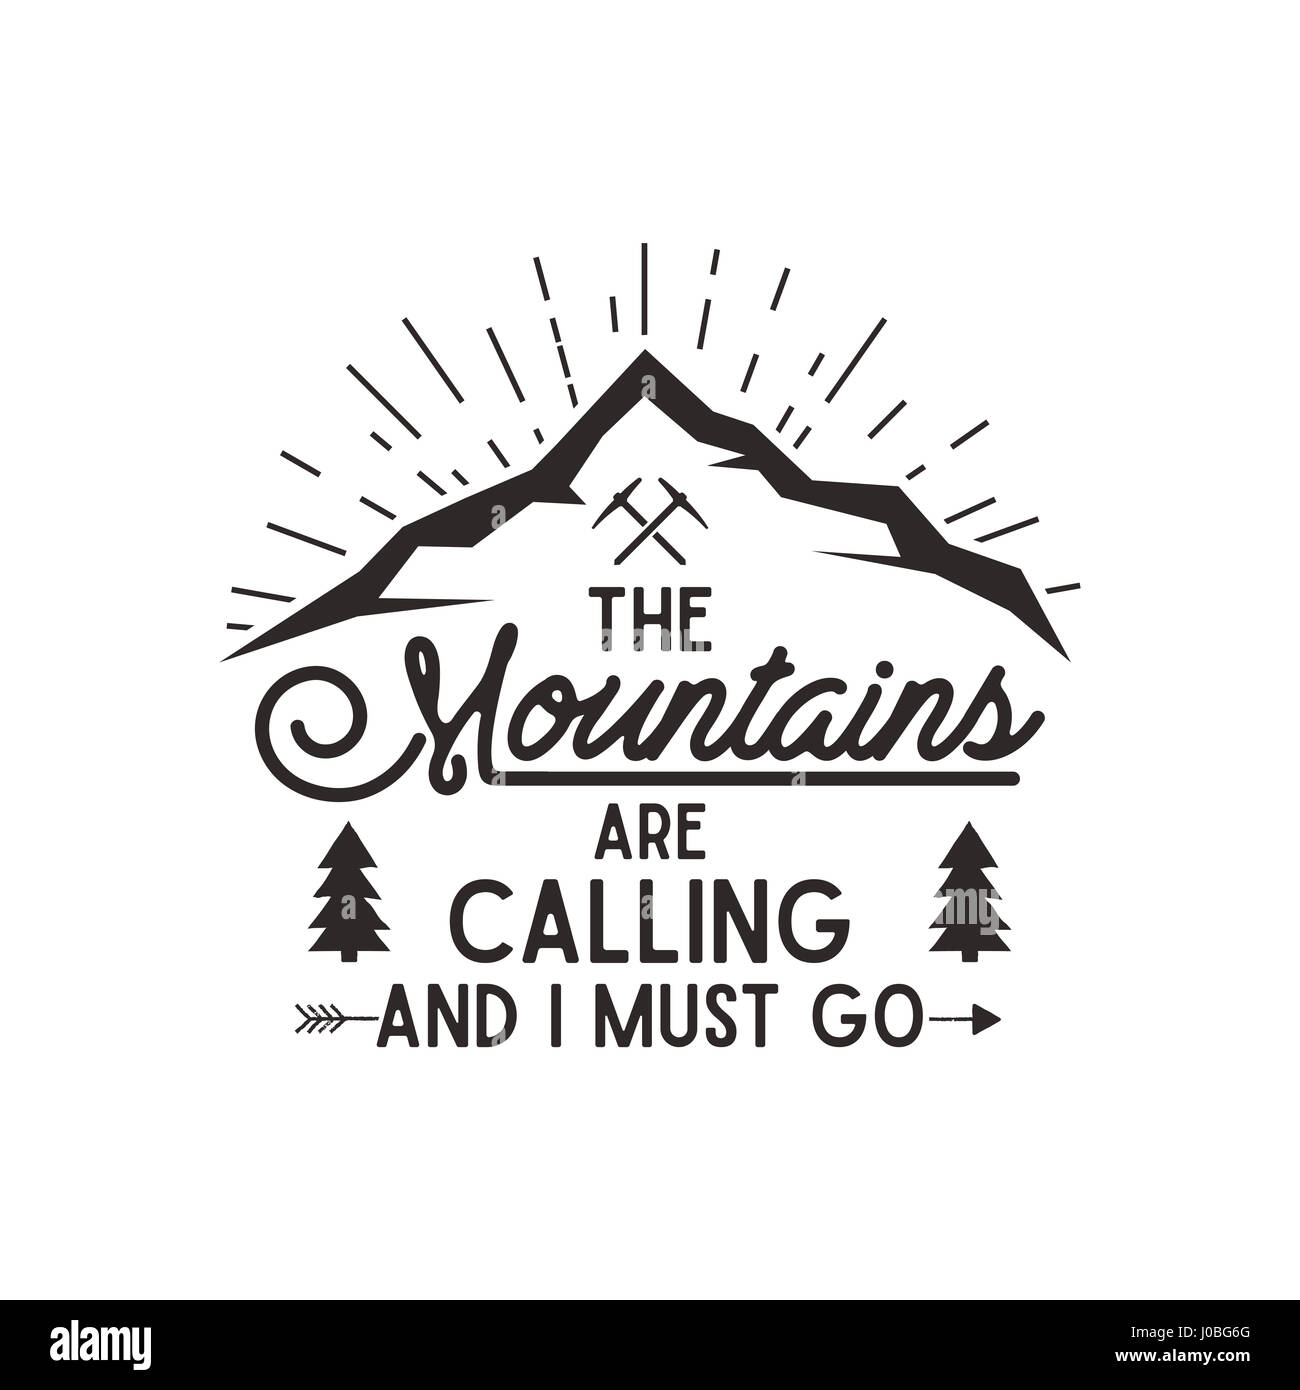 Berg ruft plakat berge explorer vintage hand gezeichnete for The mountains are calling and i must go metal sign